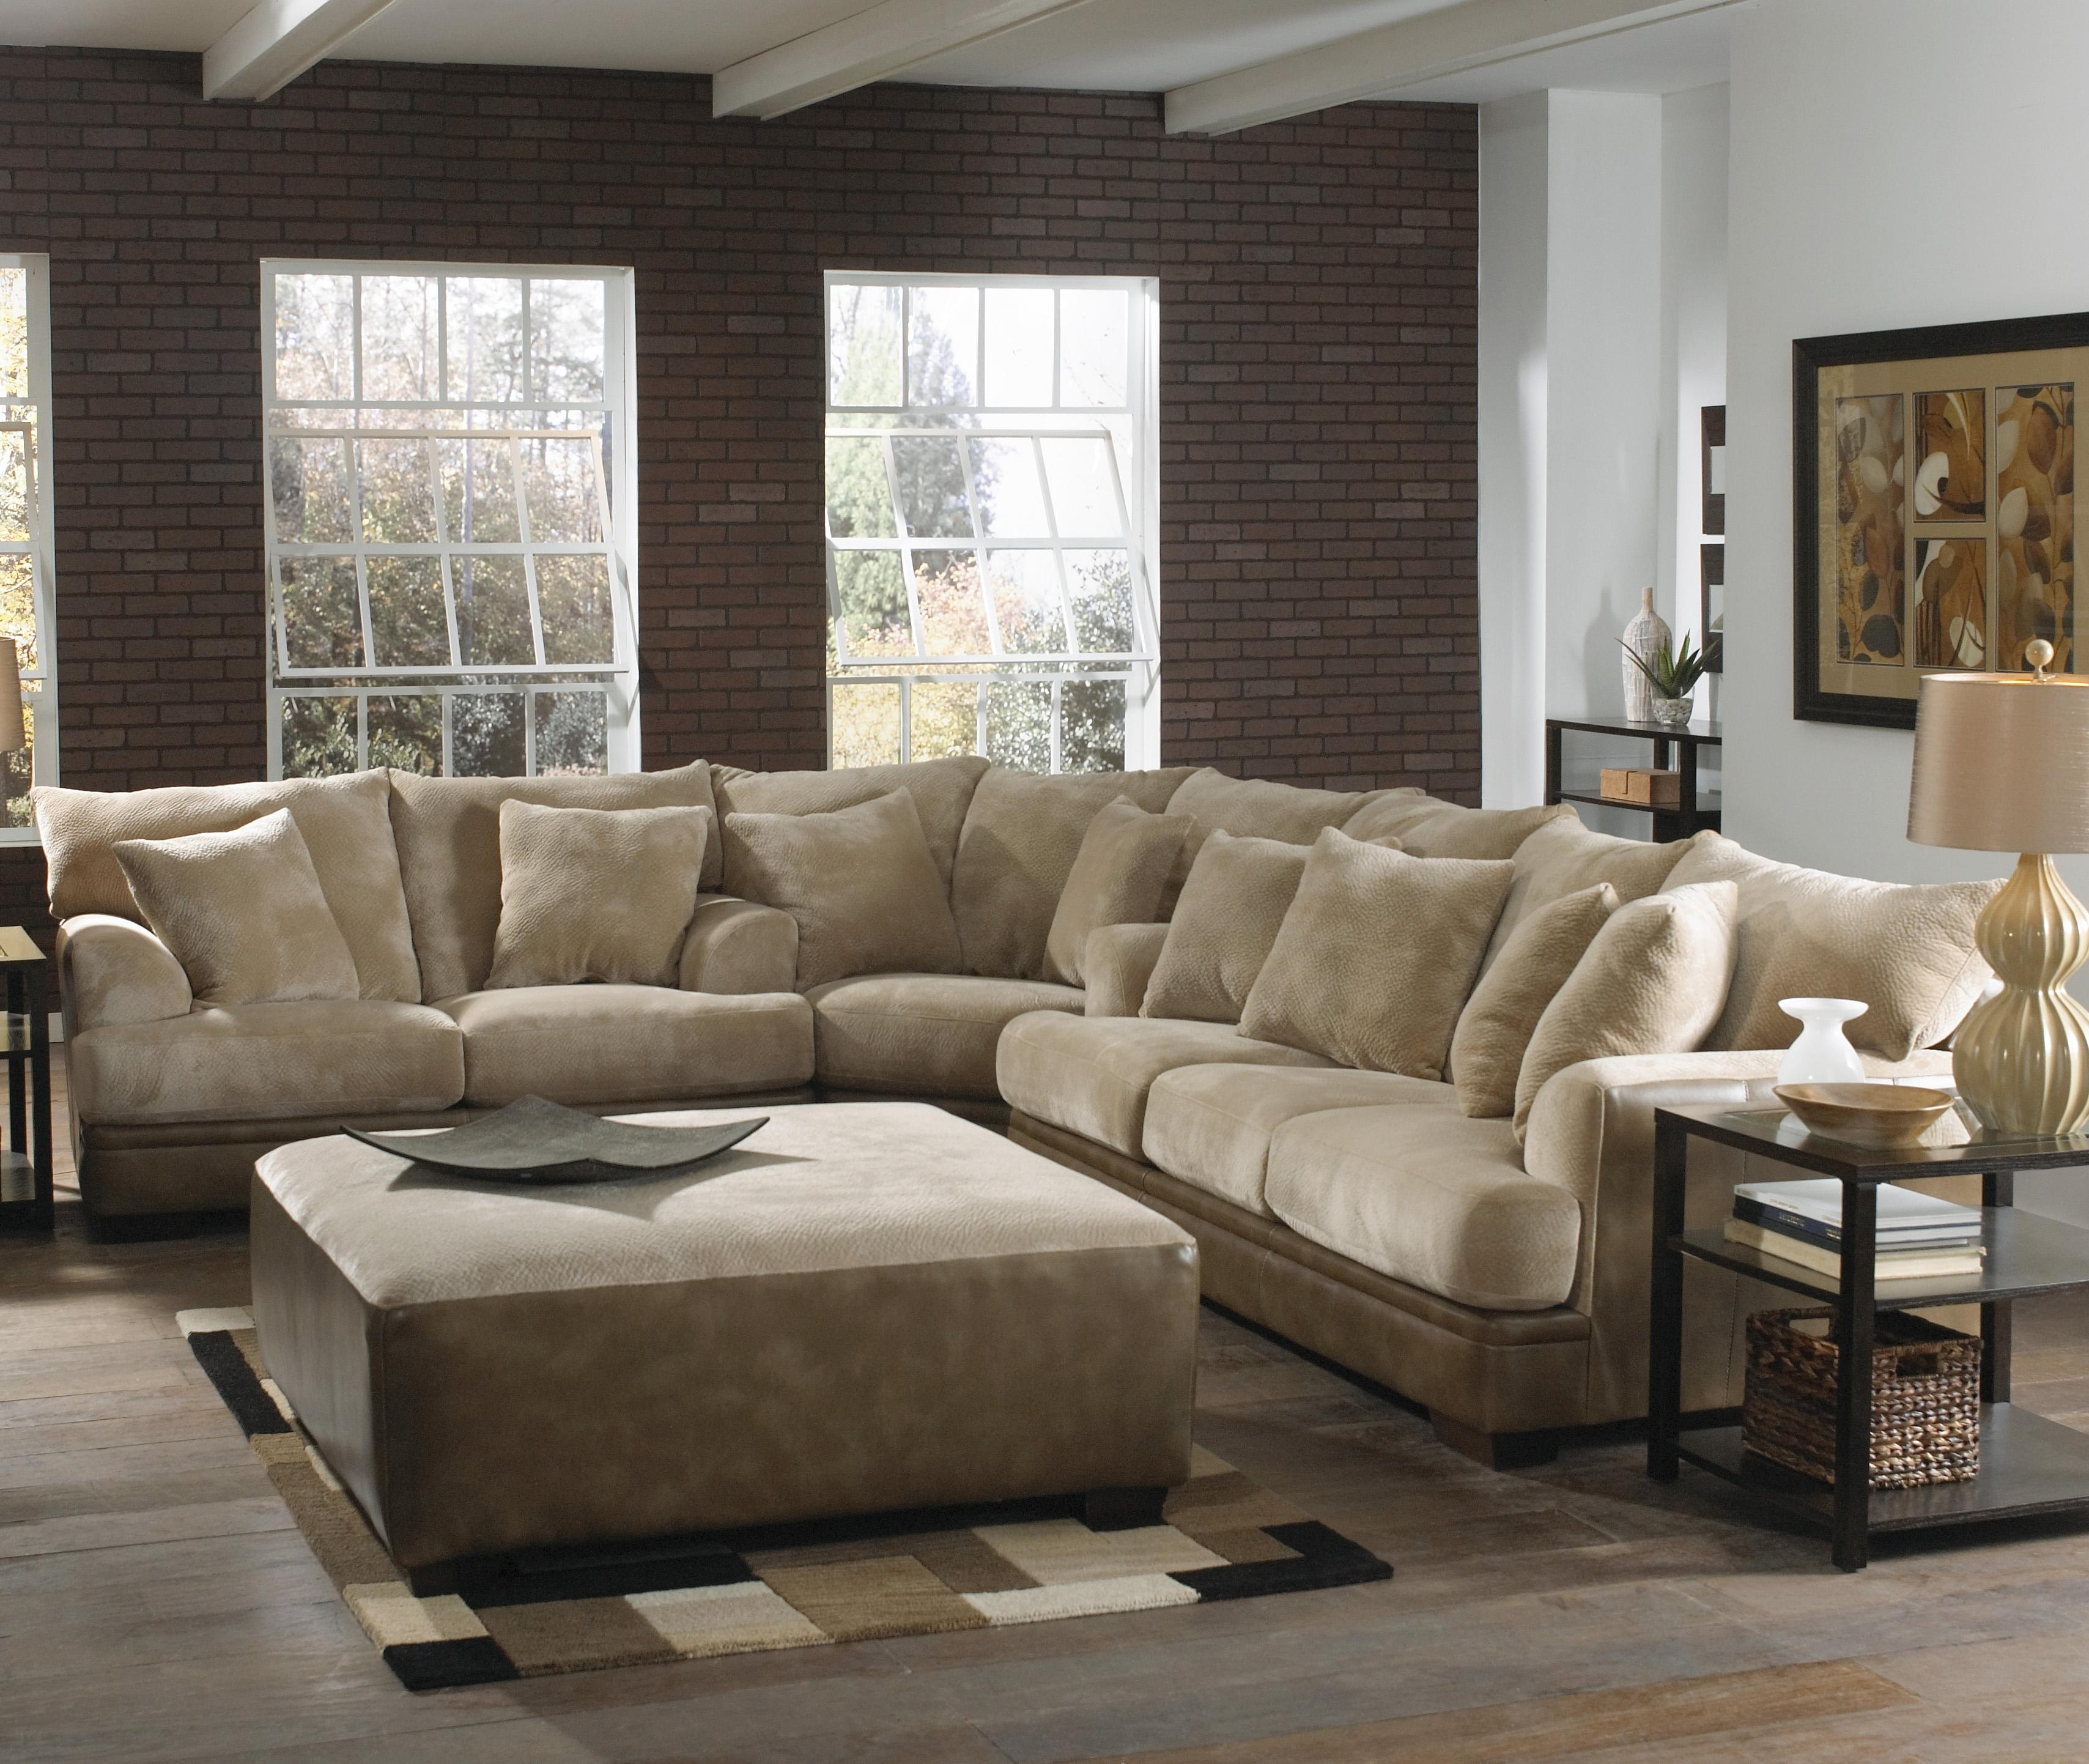 Most Up To Date Ottawa Sectional Sofas Intended For Furniture : Family Room Sectional Sofa Novogratz Vintage Tufted (View 16 of 20)